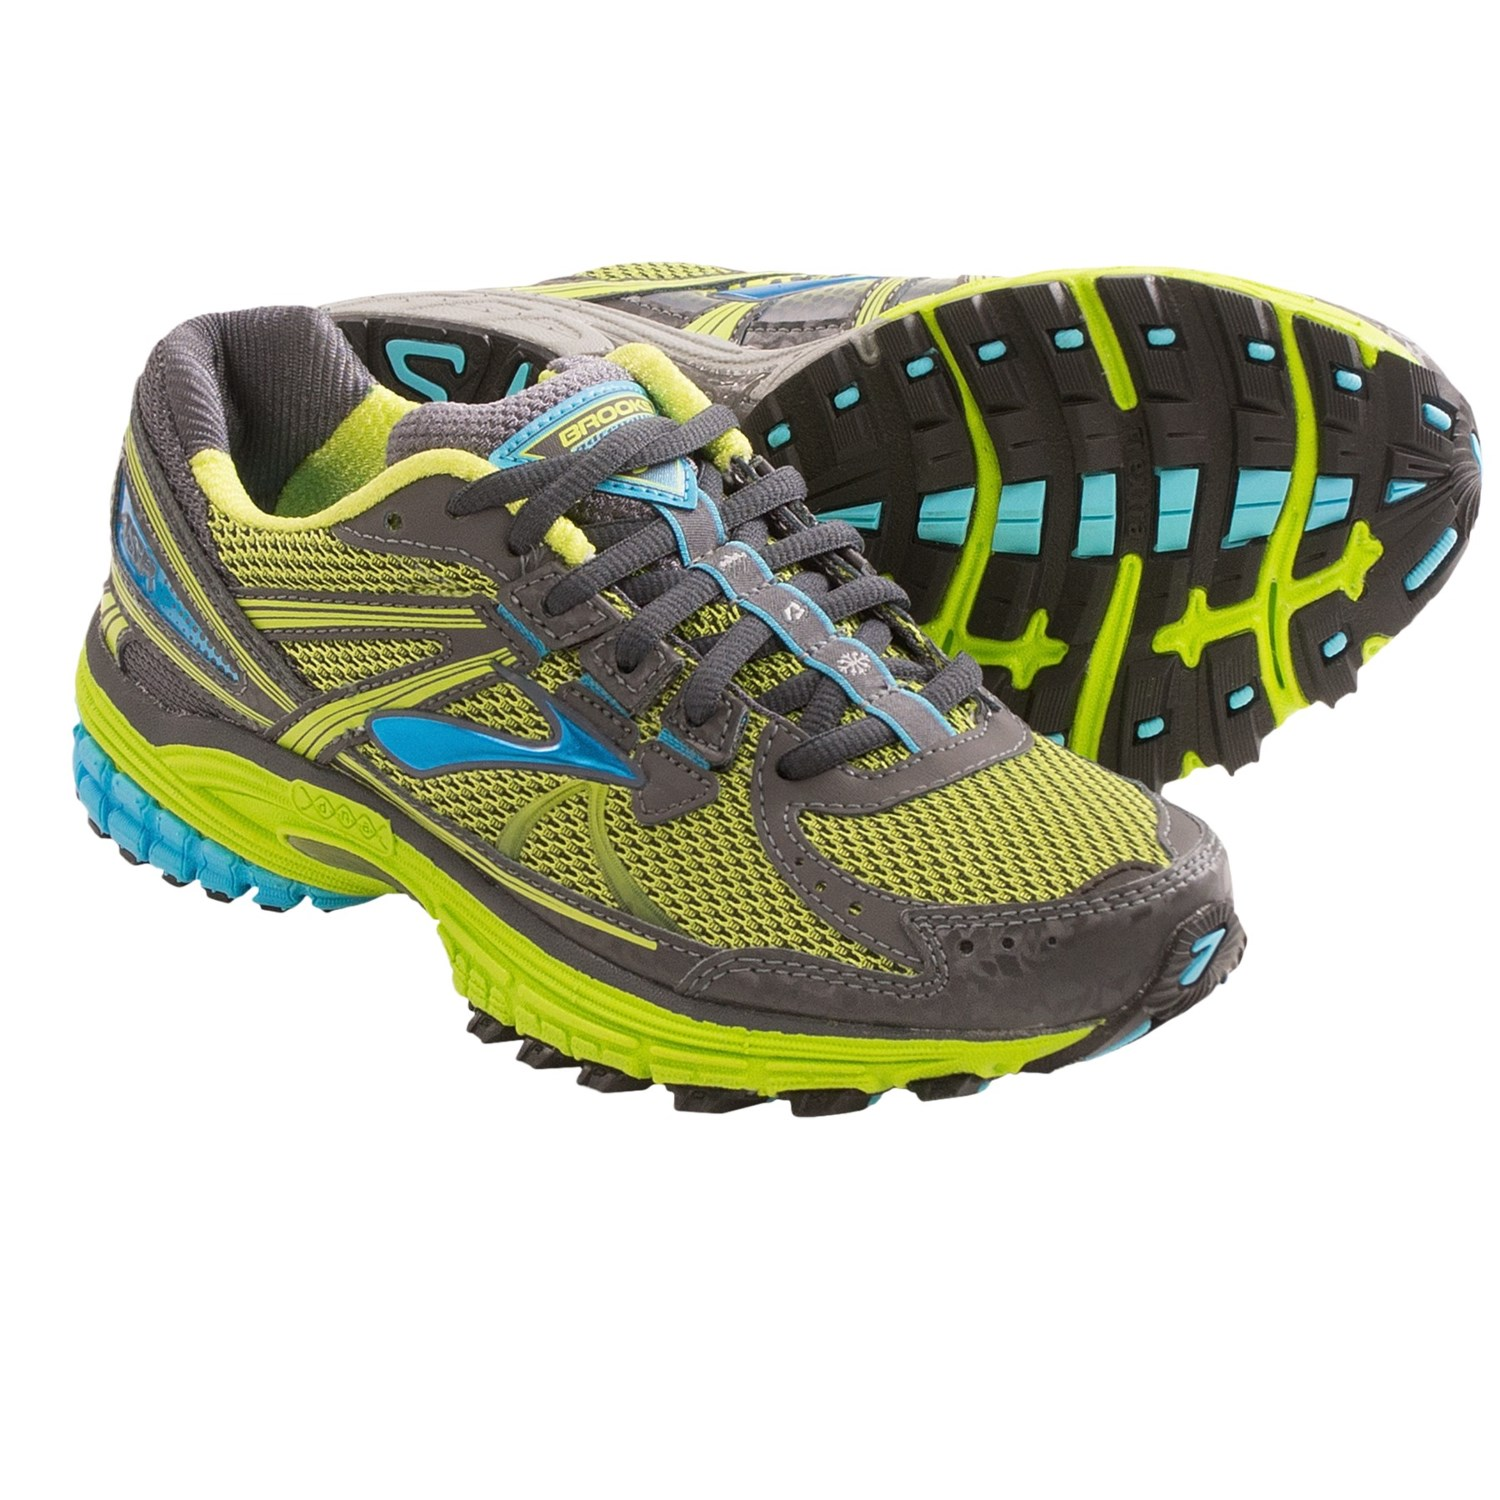 Clothing stores :: Brooks gts womens running shoes